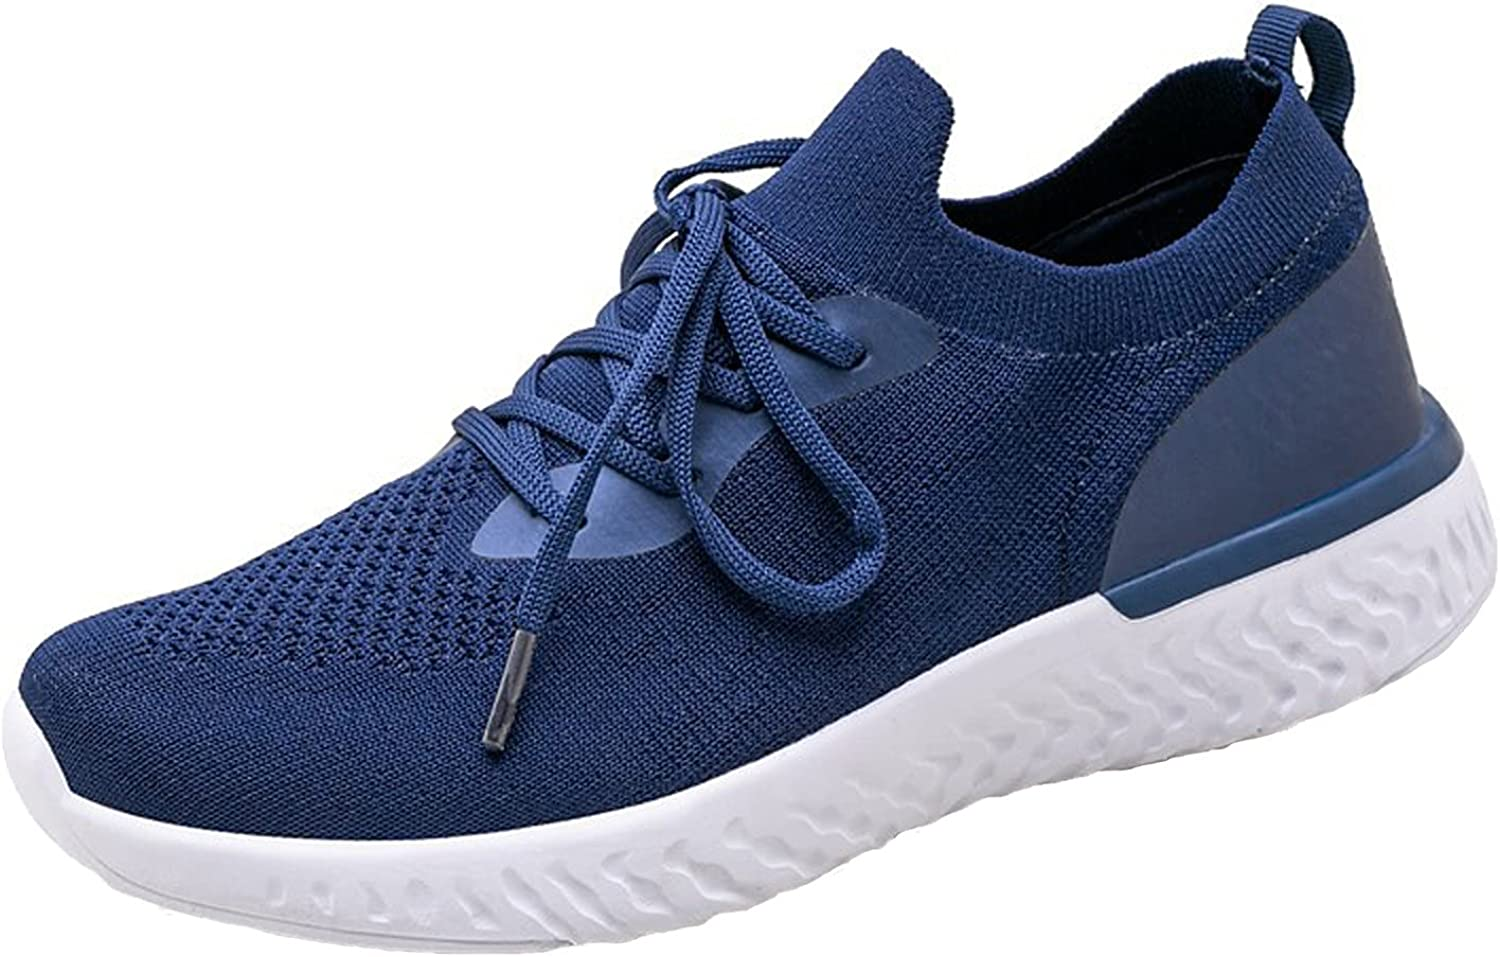 Autumn New Unisex Fashion Casual Shoes Women'S Outdoor Solid Color Lace Up Working Thick Bottom Walking Sneakers Mesh Breathable No-Slip Lightweight Running Sports Shoes